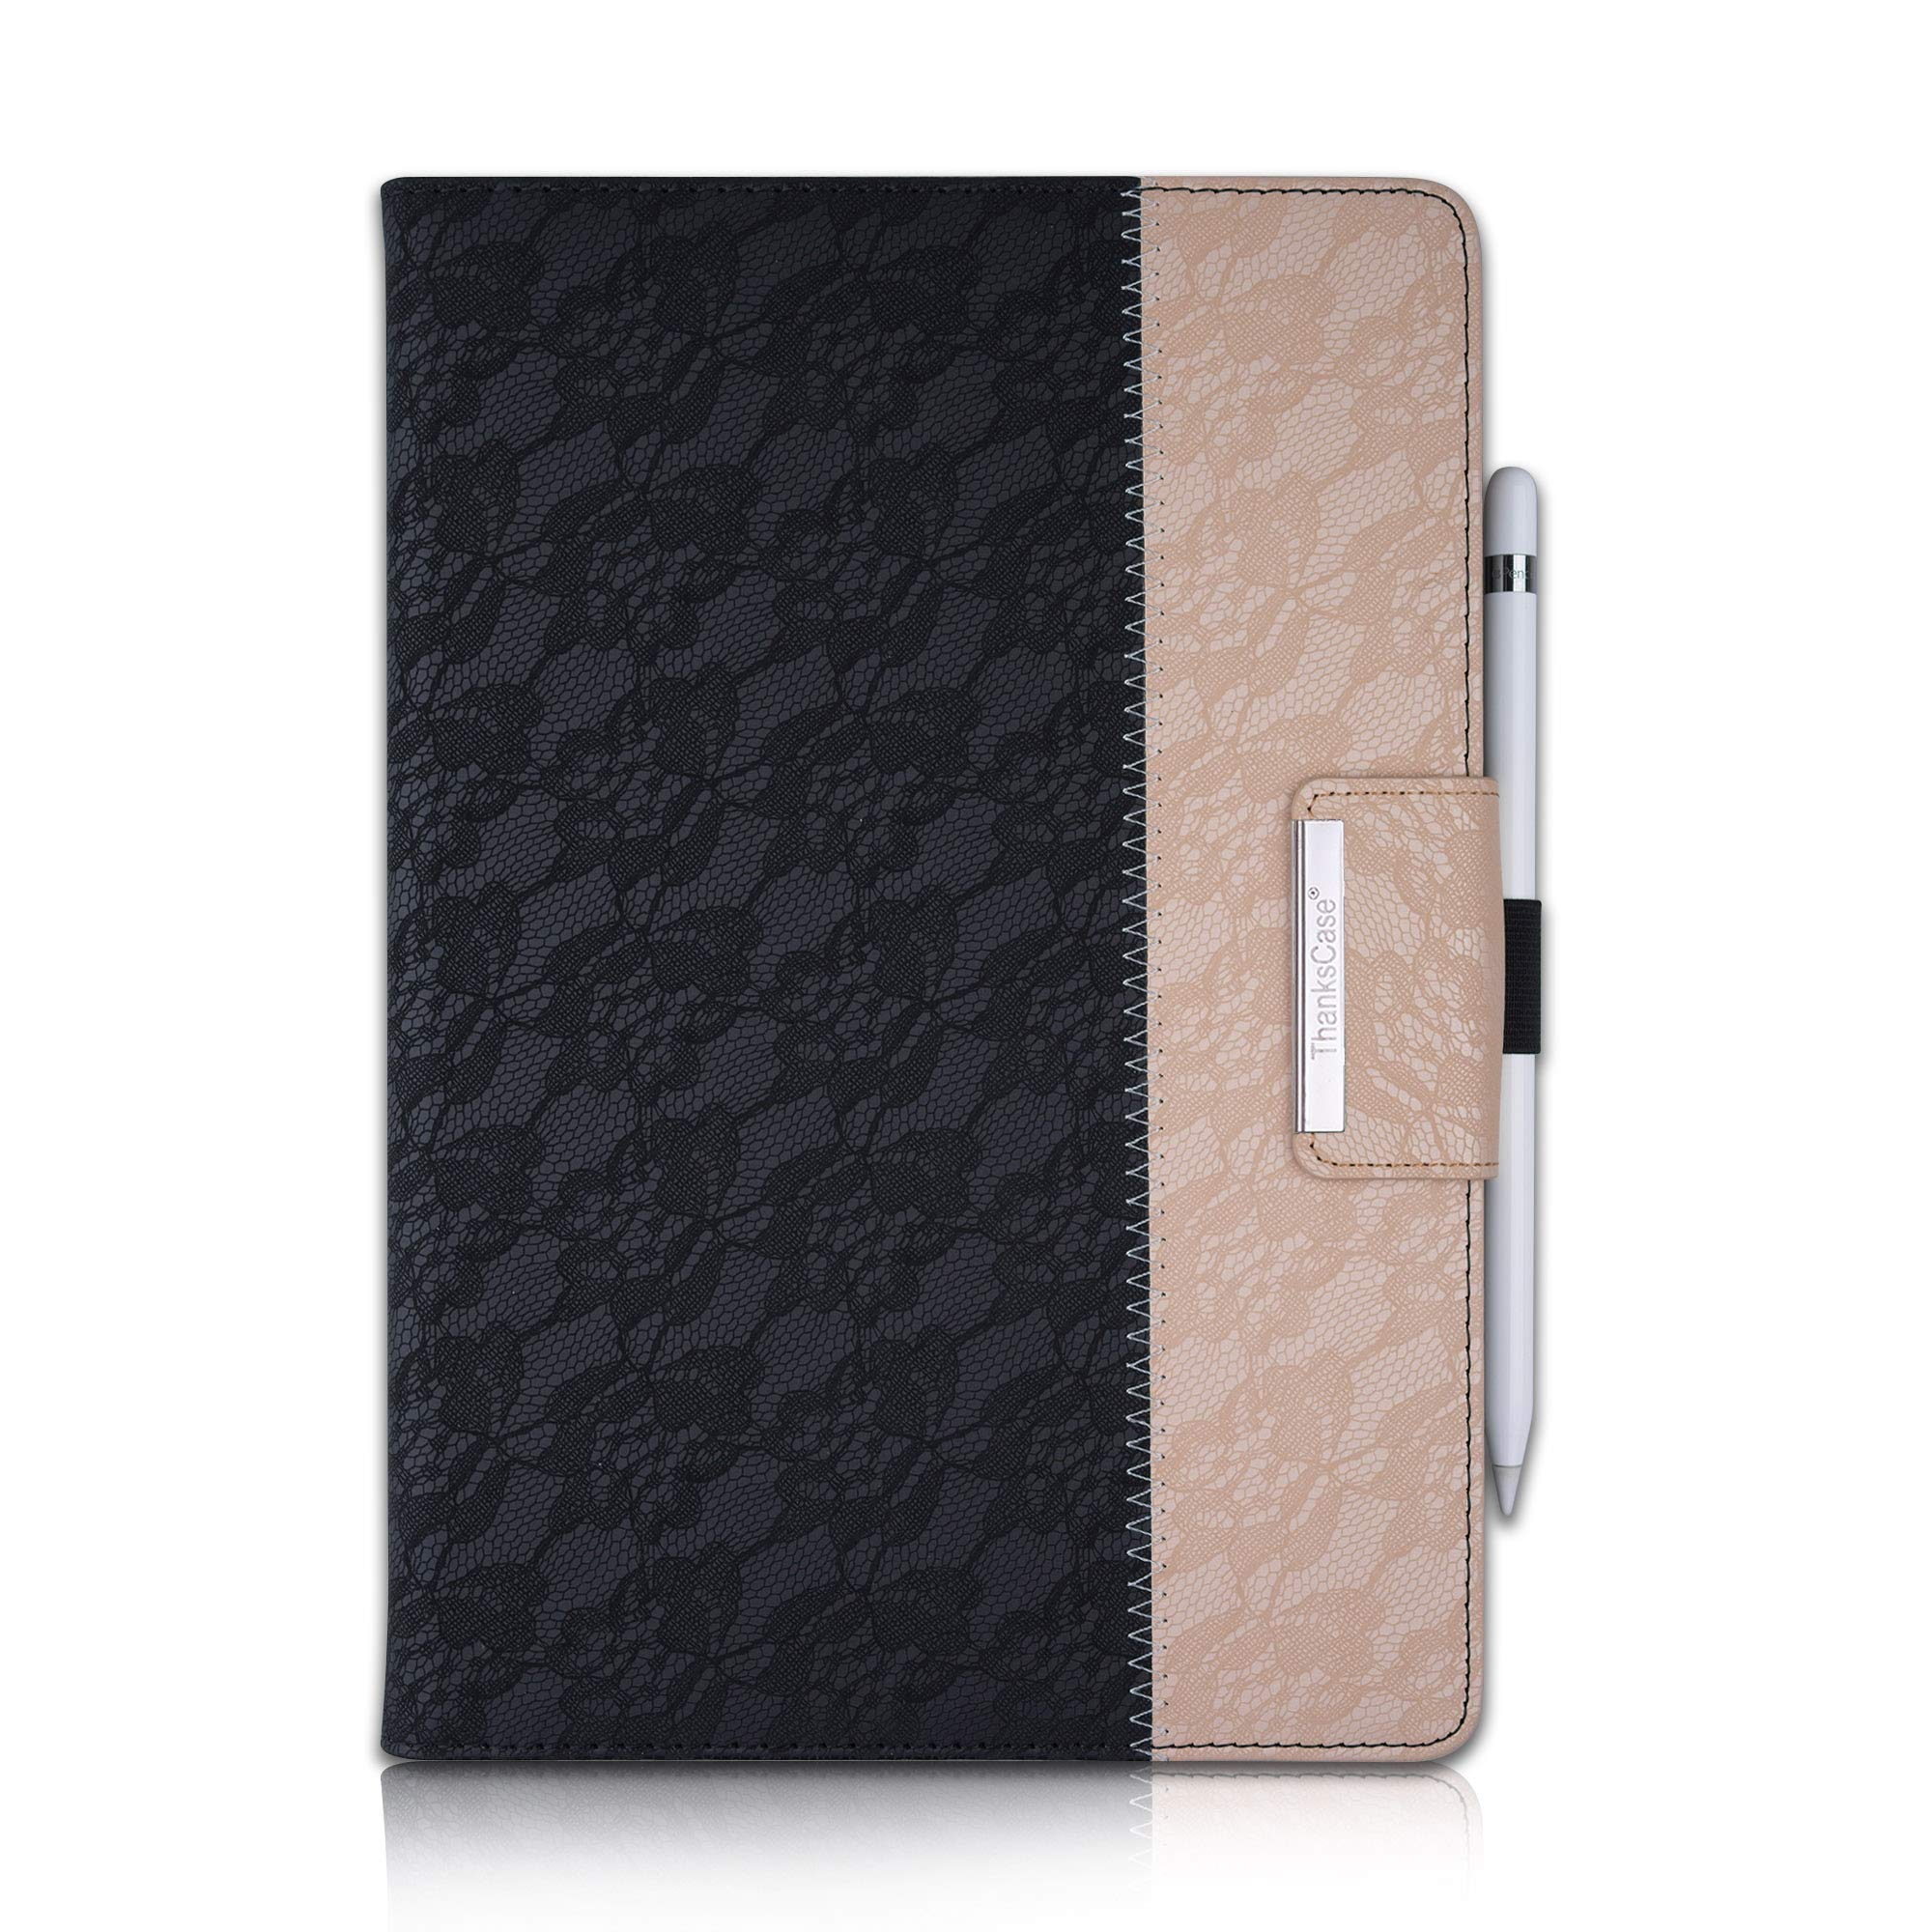 Thankscase Case for iPad 10.2, Rotating Stand Protective Case Cover for iPad 7th Gen with Wallet Pocket, Hand Strap, Pencil Holder and Smart Cover for Apple iPad 10.2 2019 Release (Lace Black Gold)